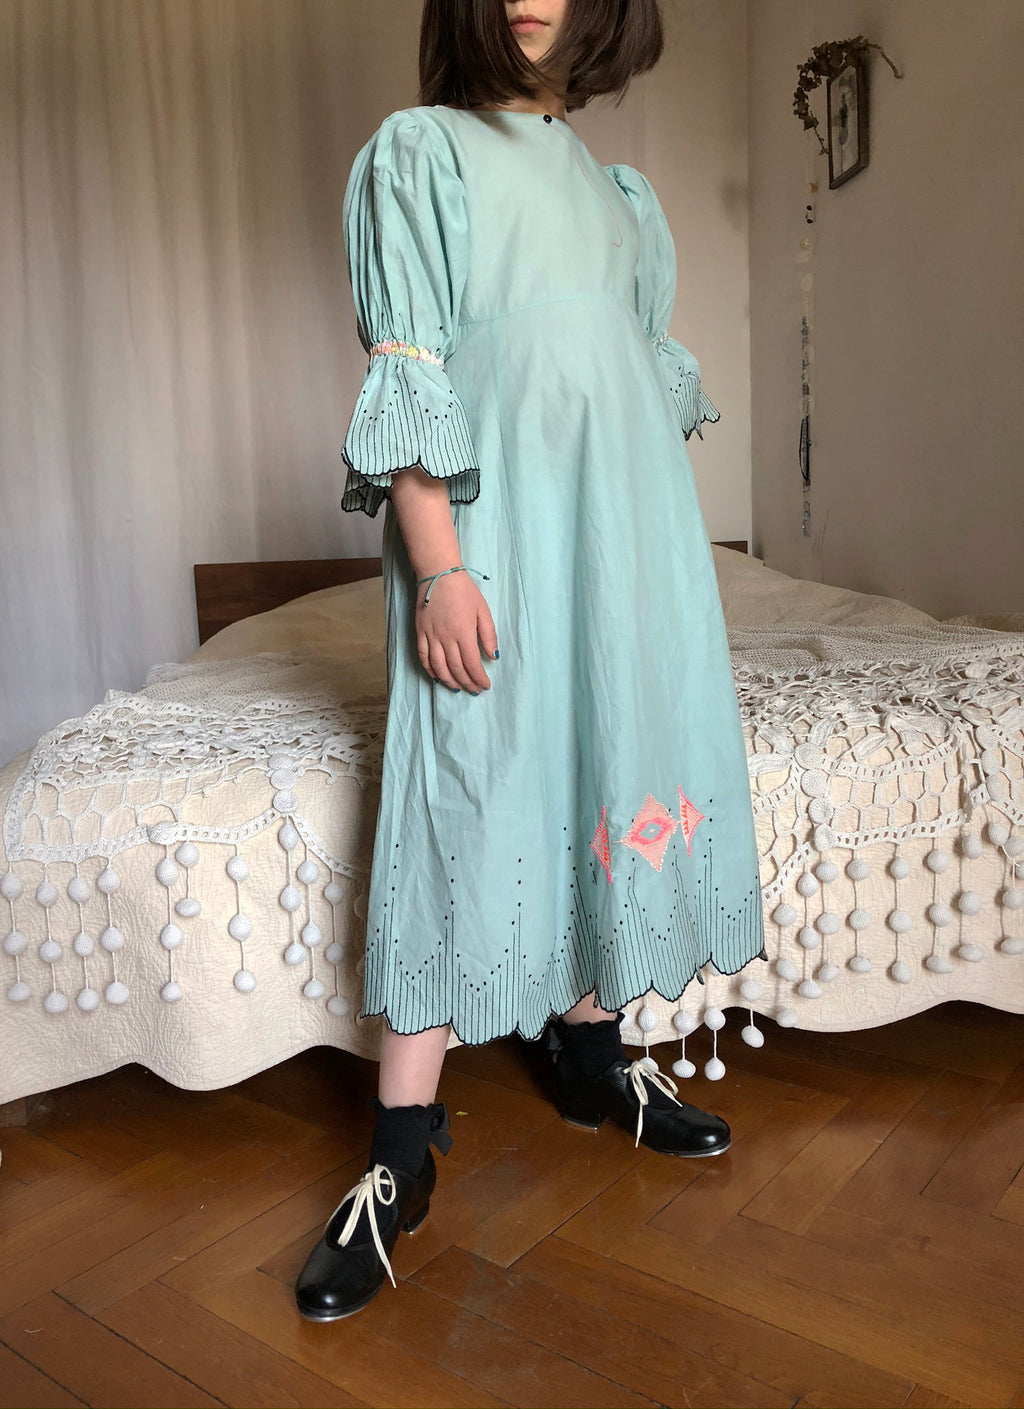 Aqua embroidered batiste dress